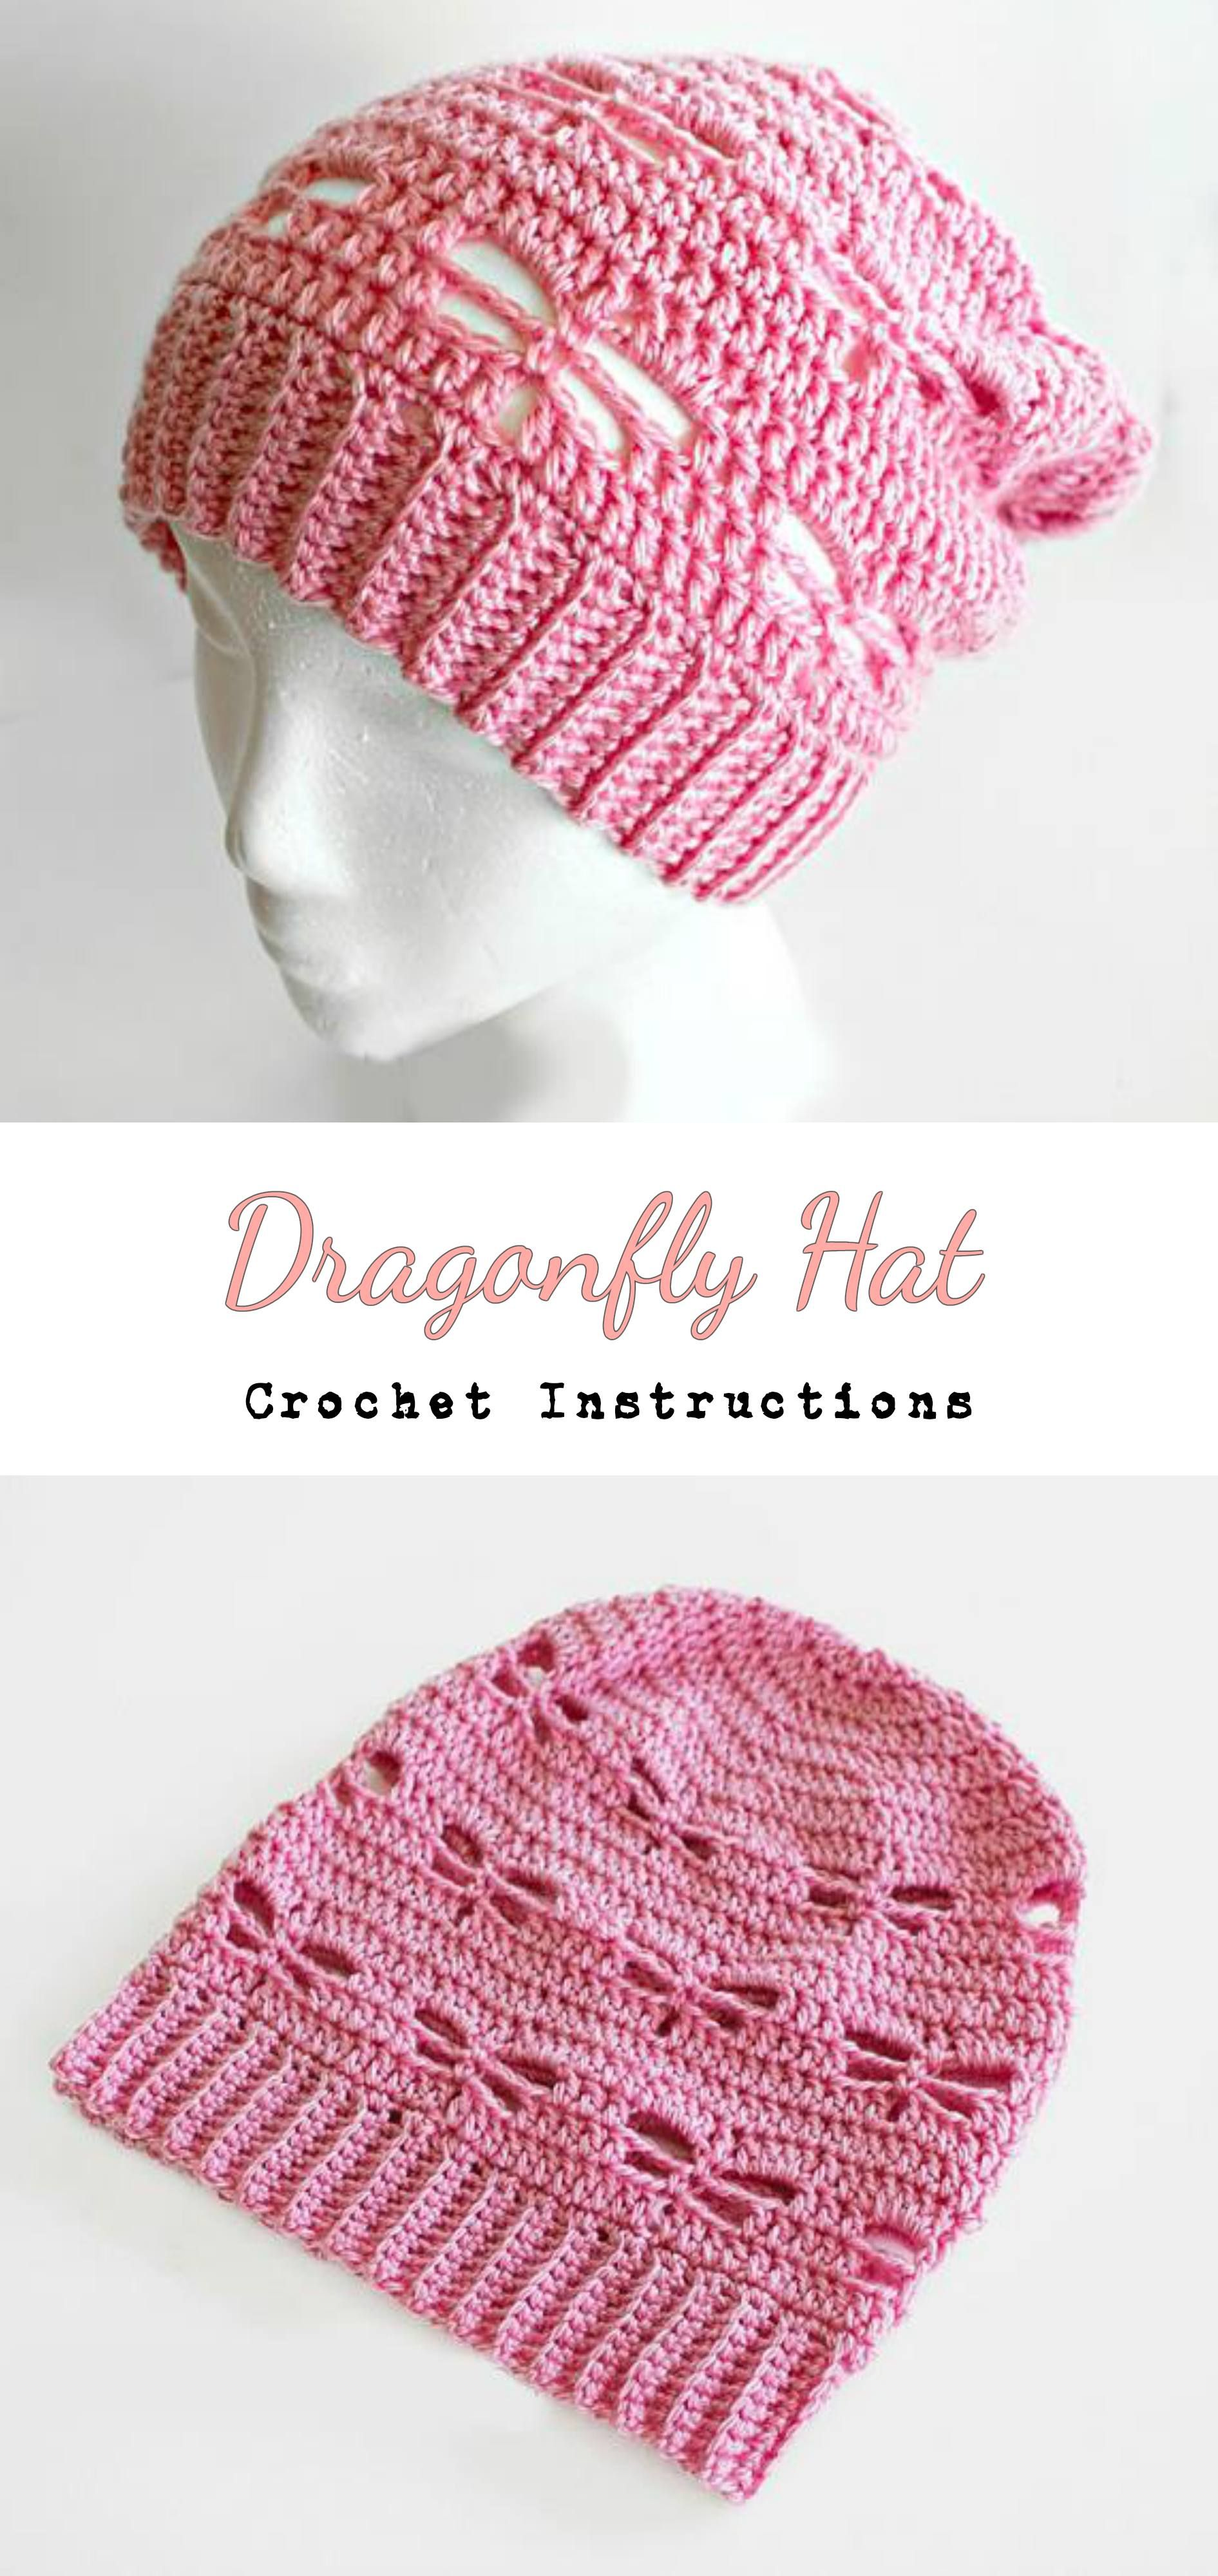 Crochet Dragonfly Hat | Crochet ideas | Pinterest | Gorros, Capuchas ...